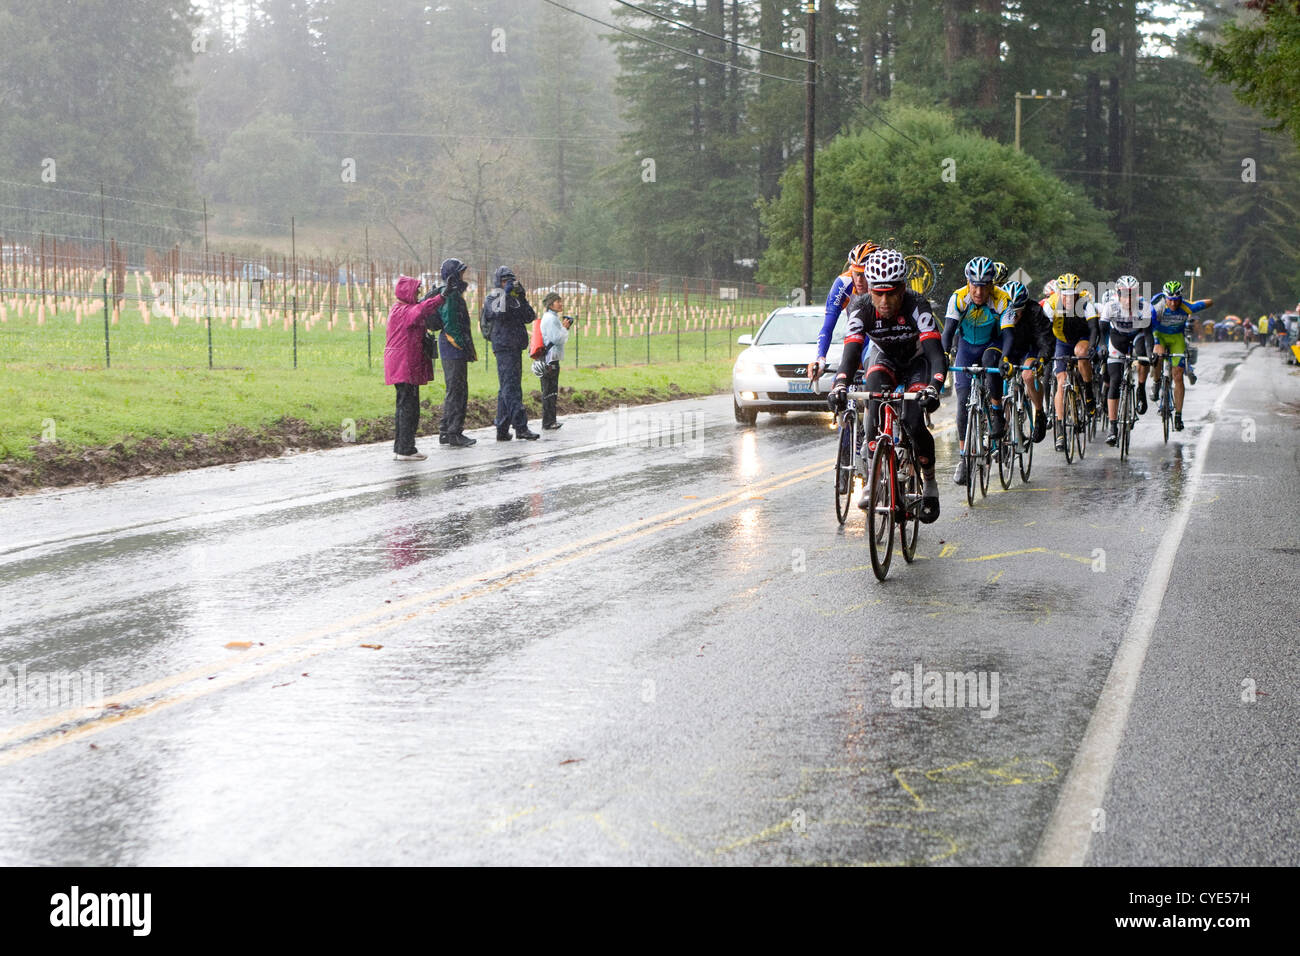 Lance Armstrong and his team charge up a hill during the AMGEN Tour of California competition. - Stock Image